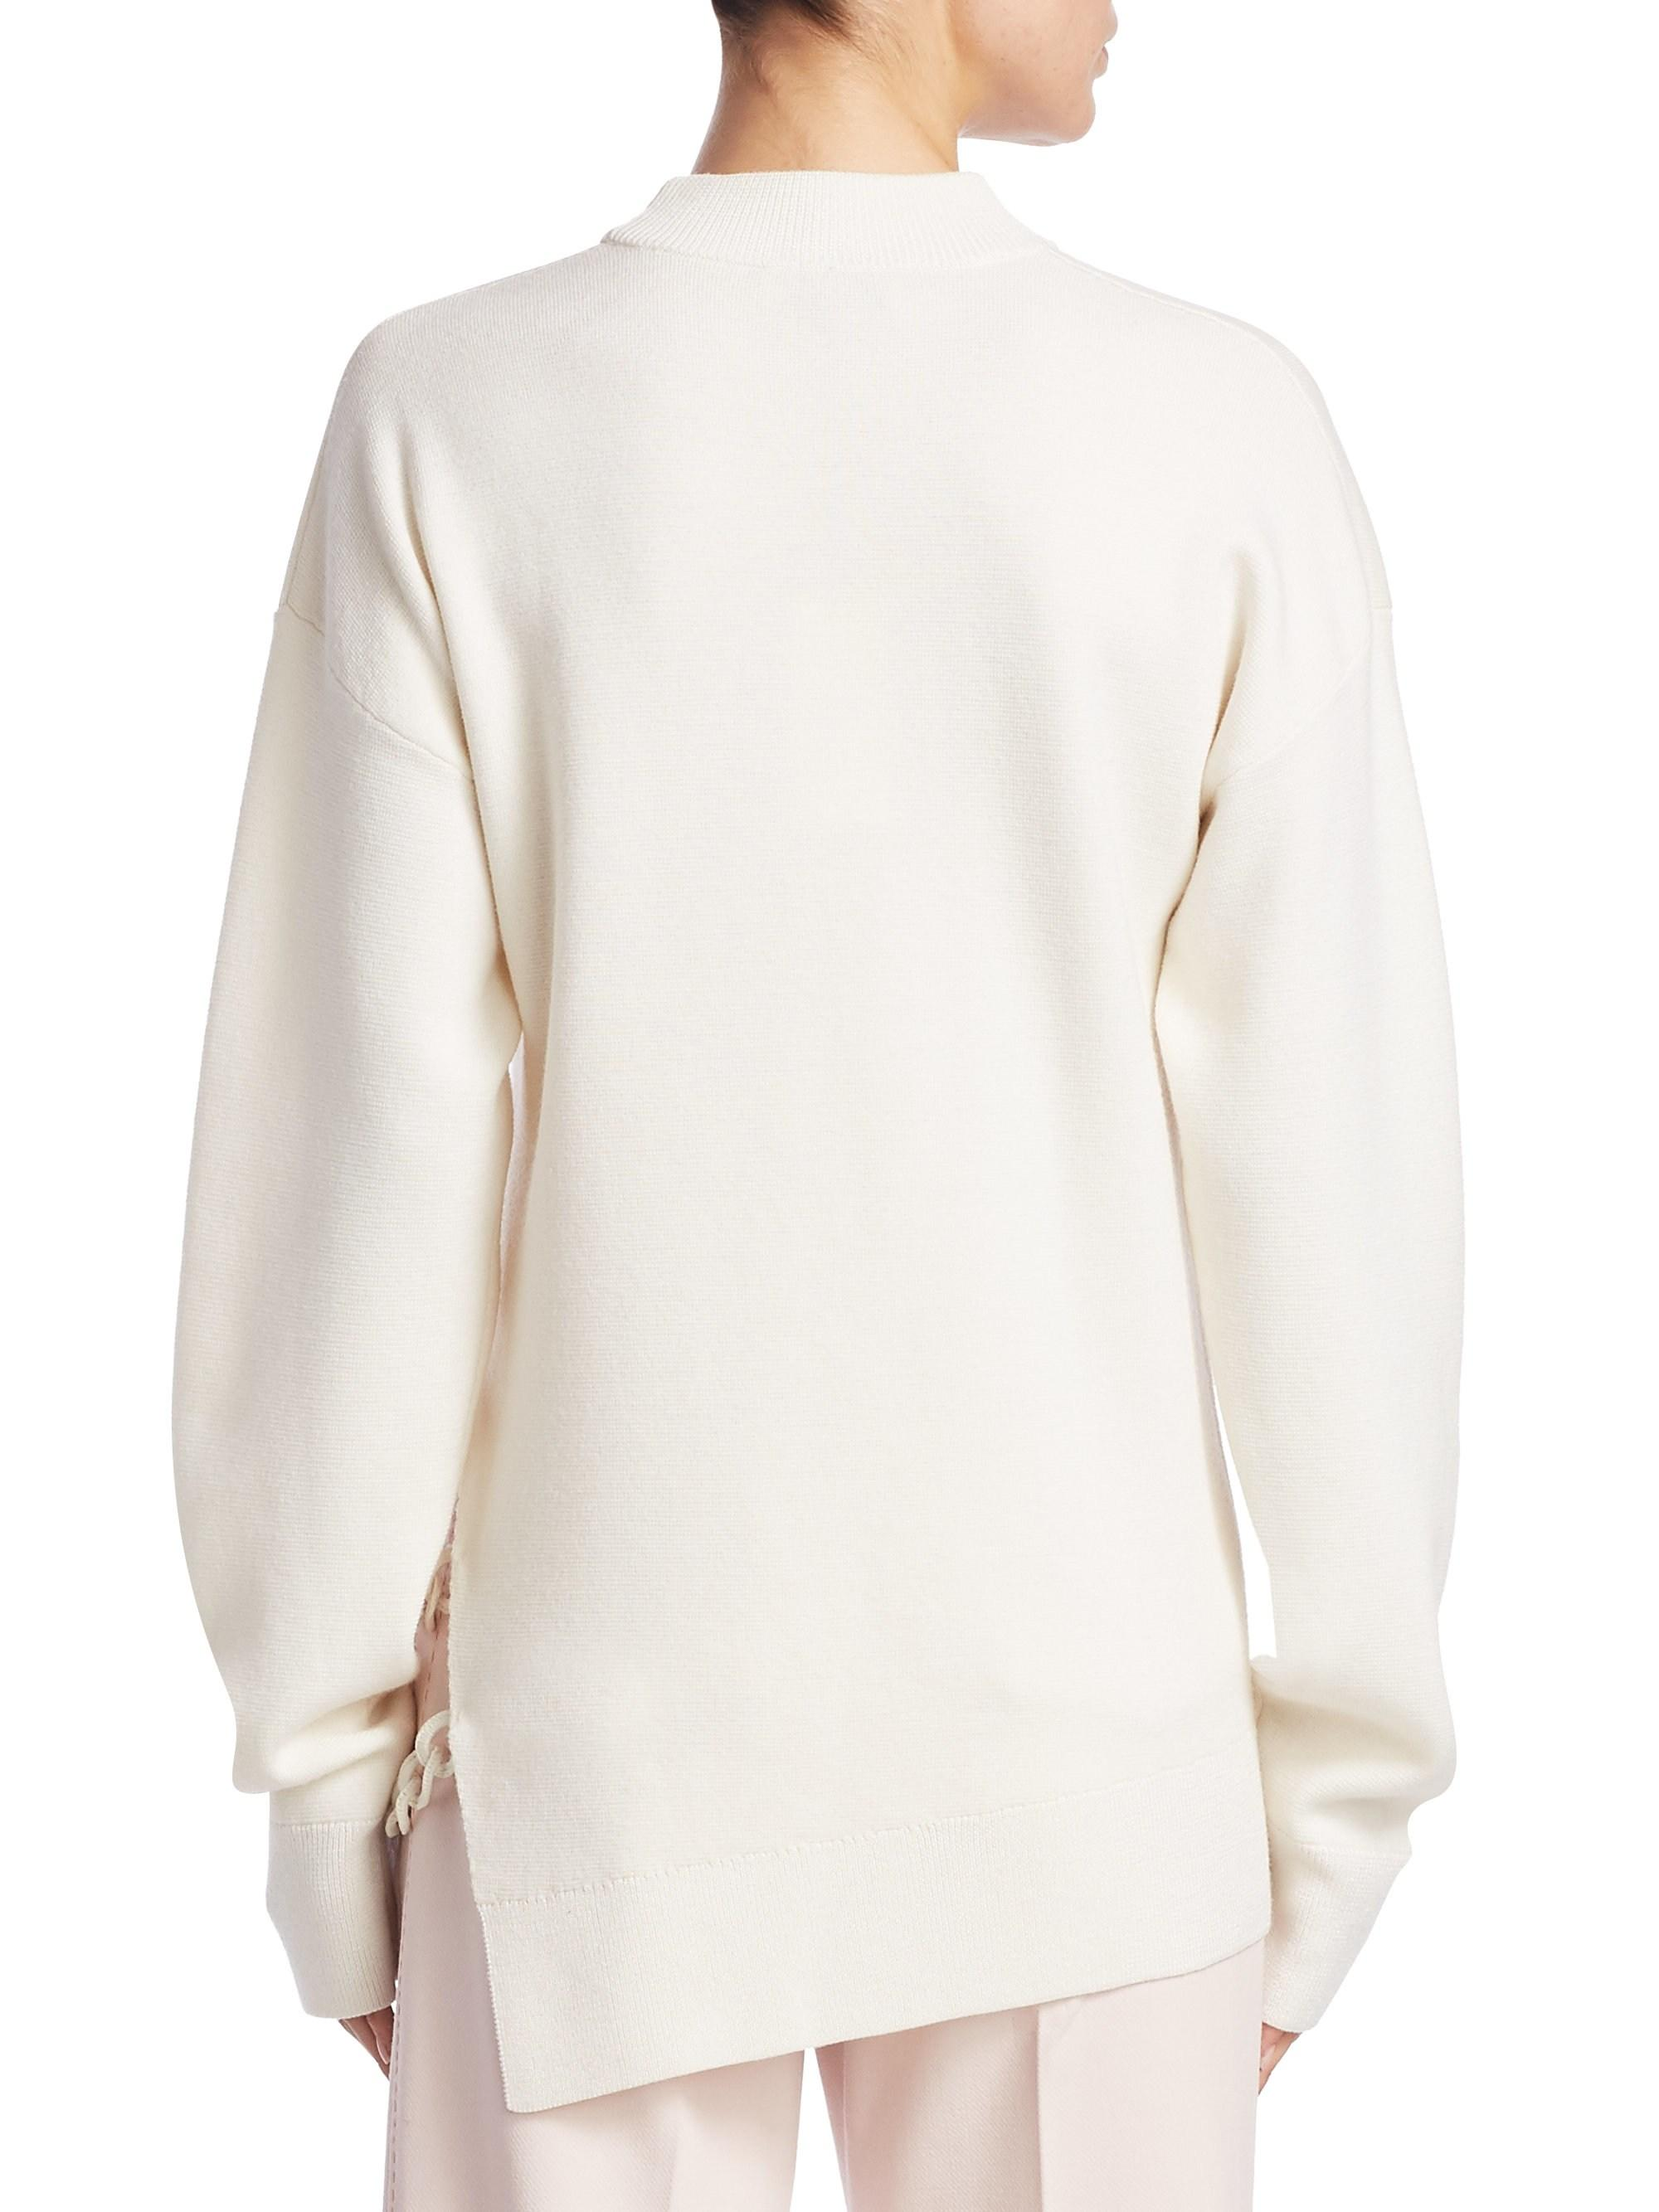 38b61e8e4f Lyst - Carven Oversized Wool Chain Link Sweater in White